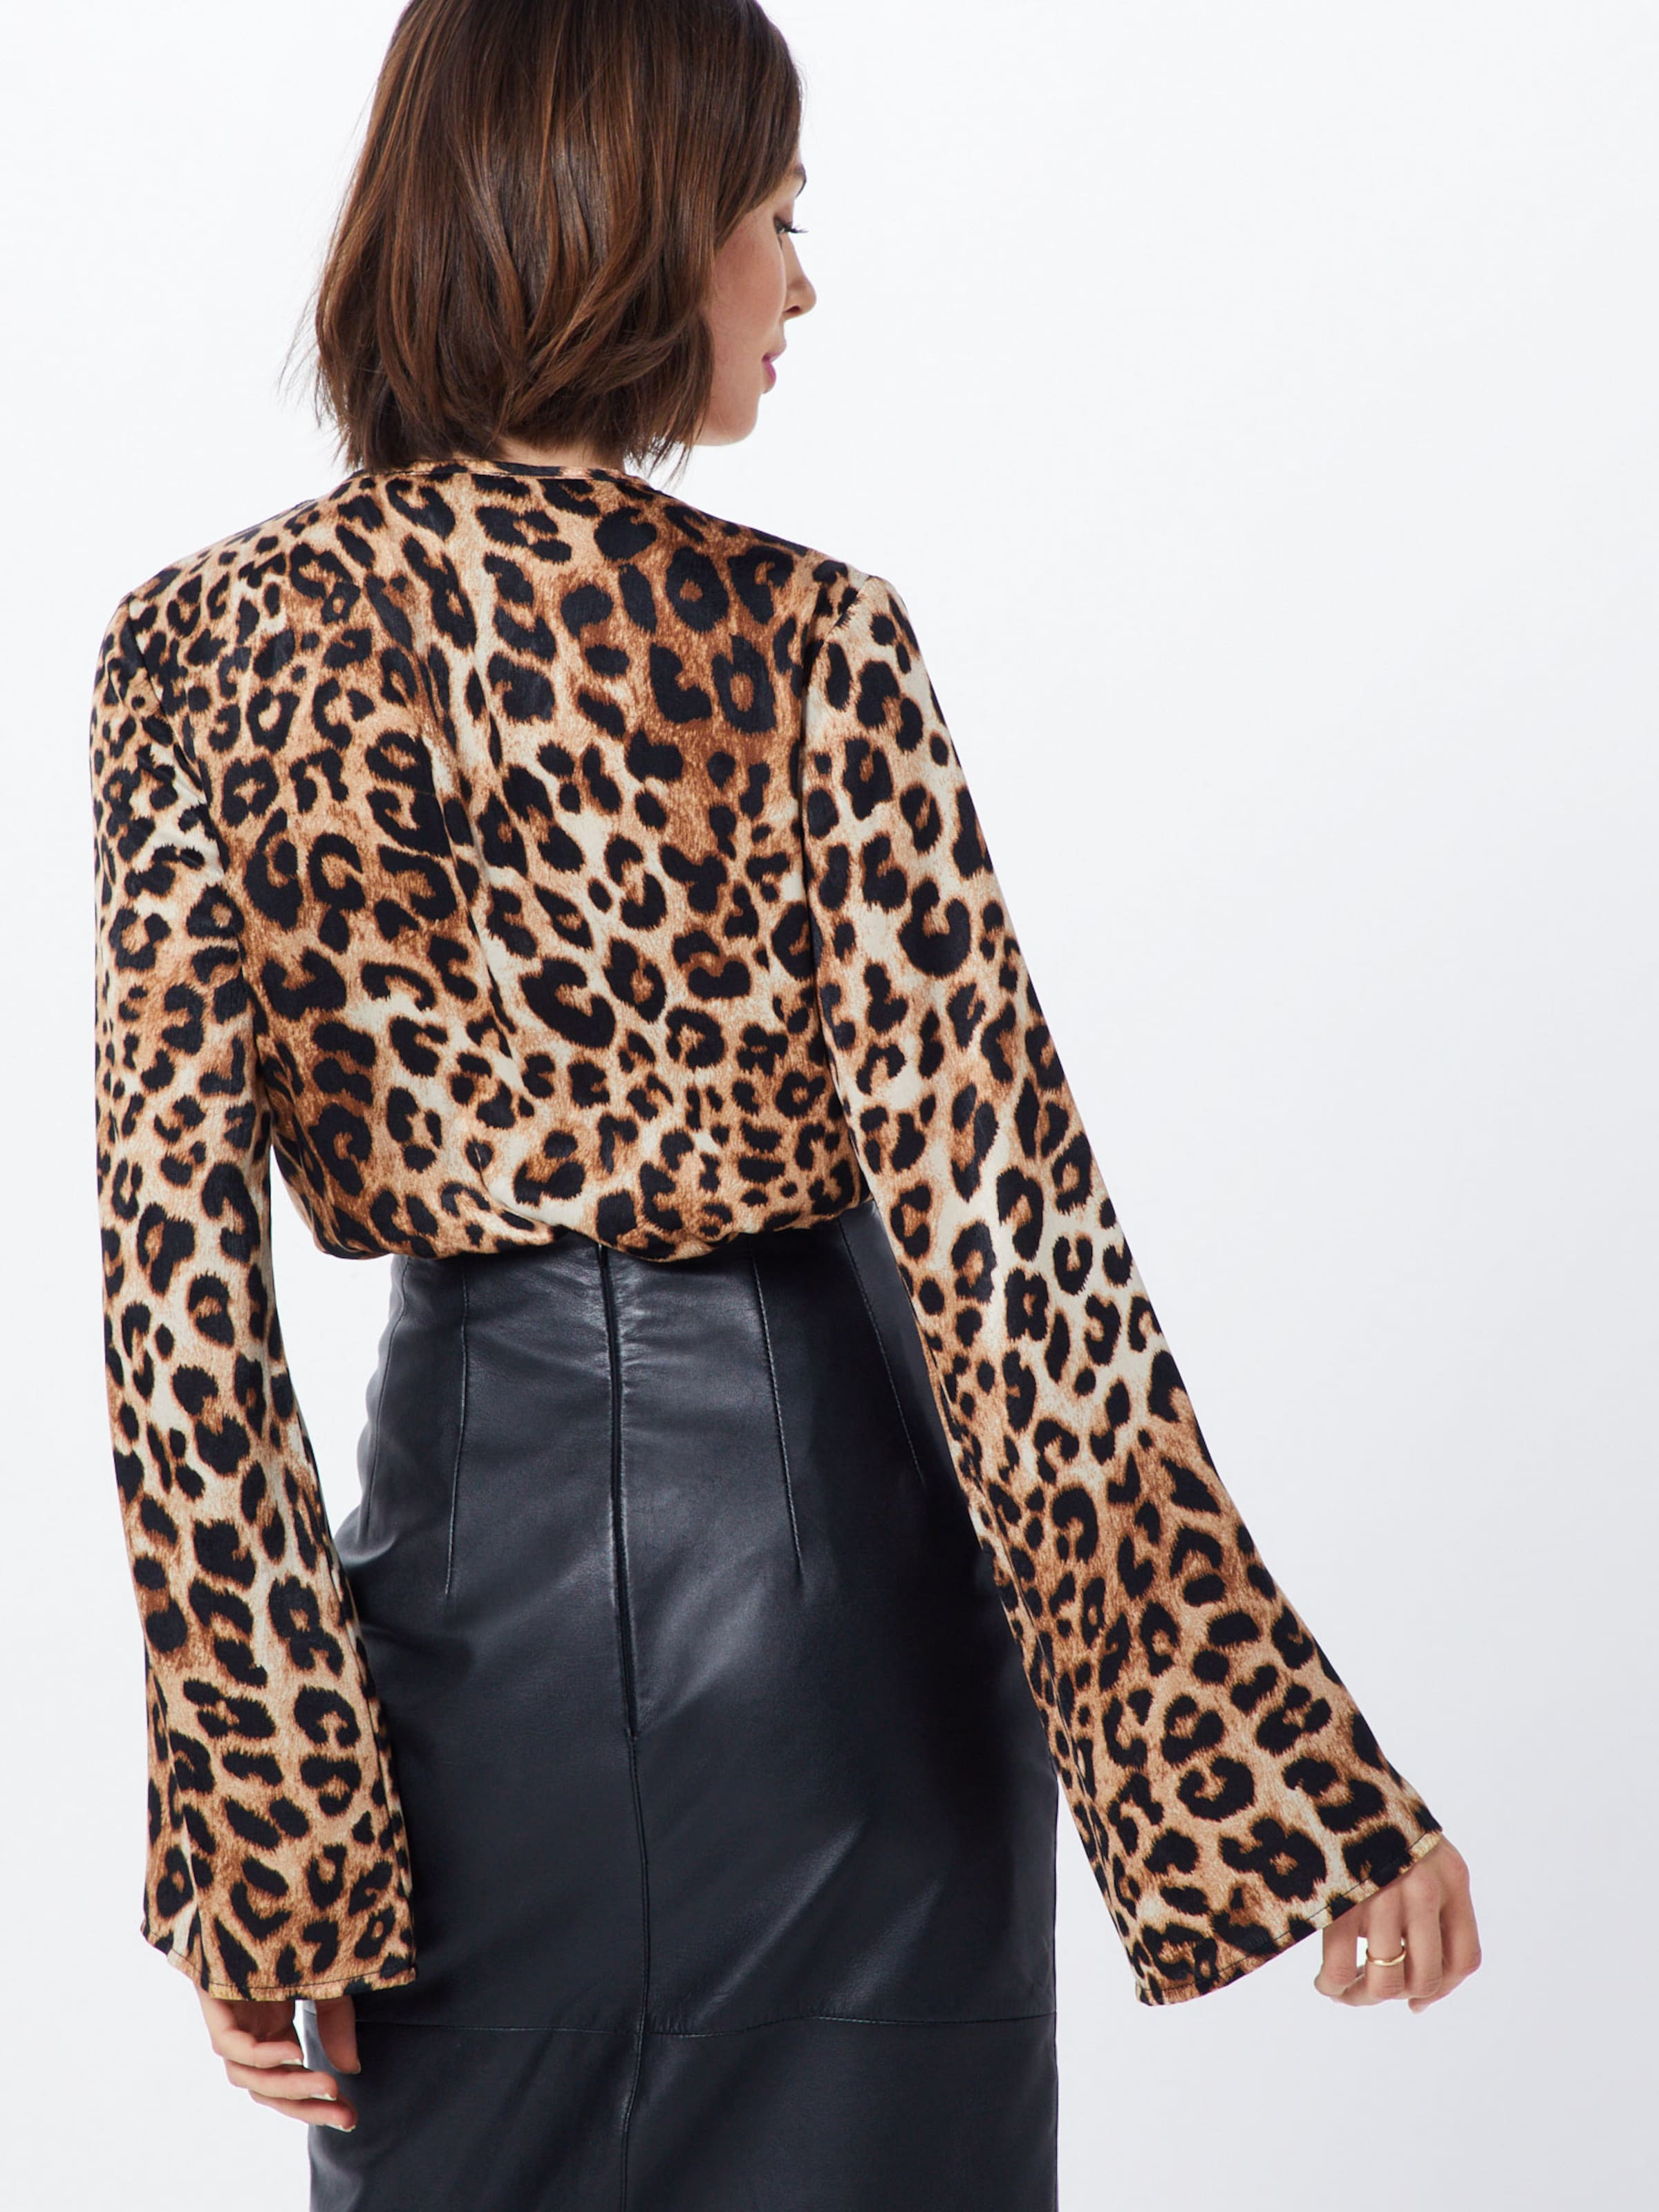 MarronNoir Bodysuit' Missguided En 'animal Plunge Chemisier Drape UMGSVpqzL